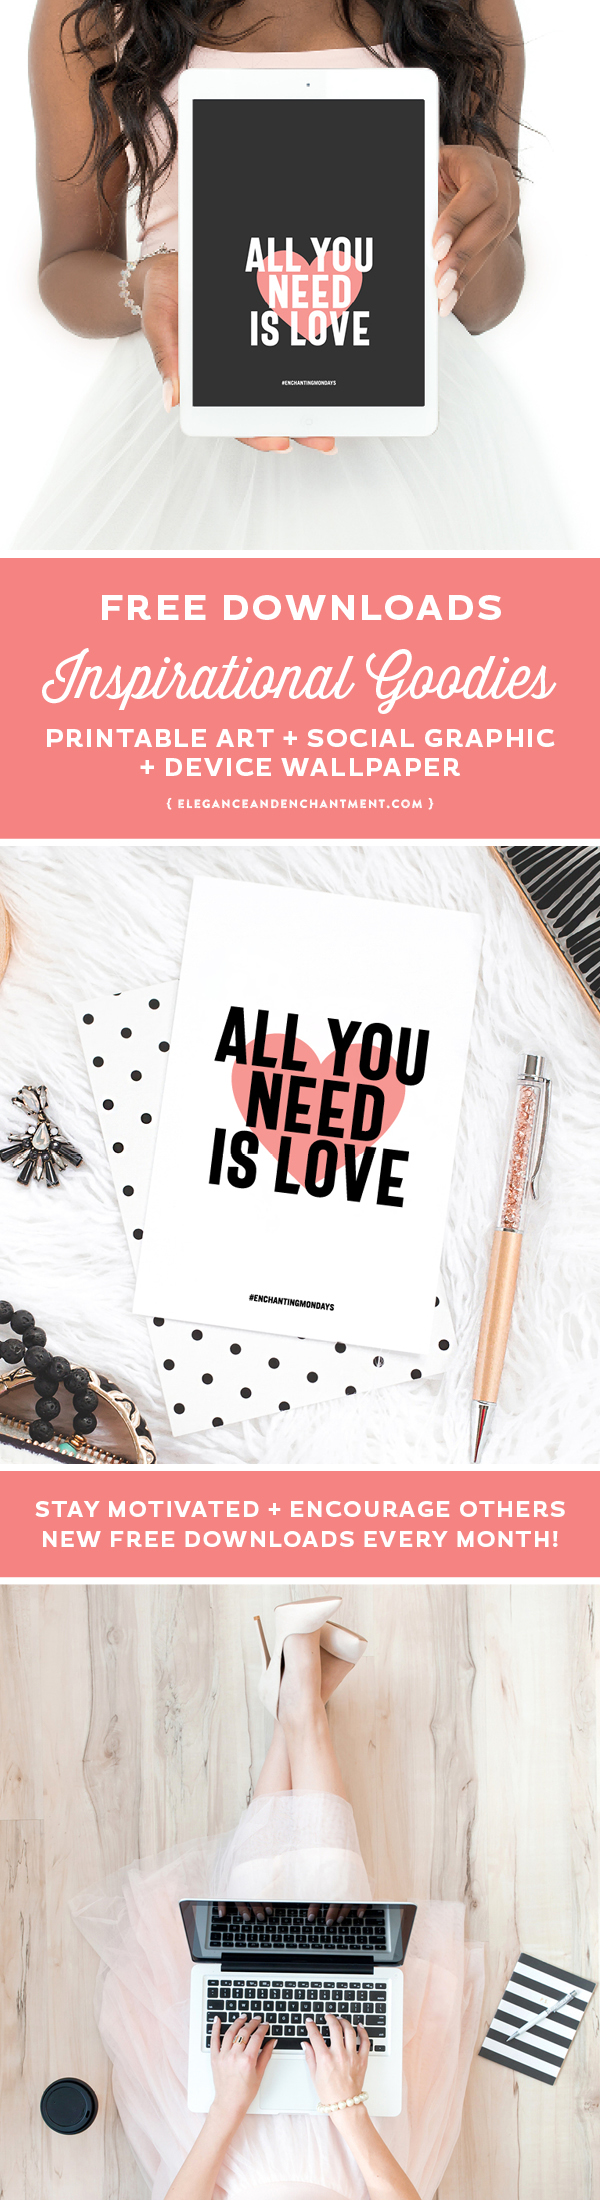 All you need is love printable art, device wallpaper for your phone, tablet and desktop, and a social media graphic. Enjoy these free inspirational downloads and look for new motivational designs, shared for free every month! Spread the love by sharing with a friend! // Designs from Elegance + Enchantment